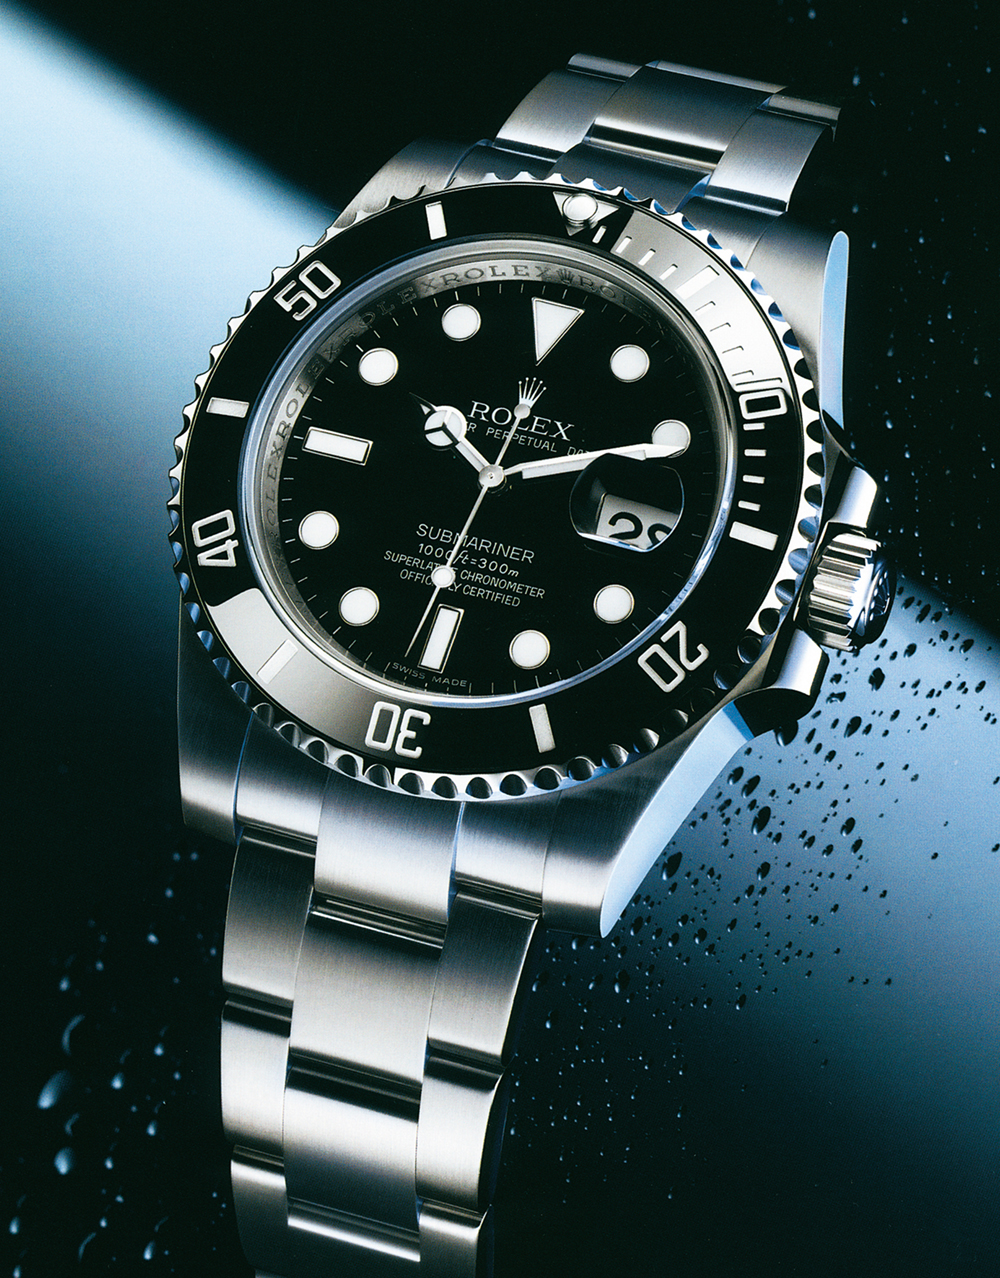 Oyster Perpetual Submariner Date, 2010  Photo © Courtesy of Rolex